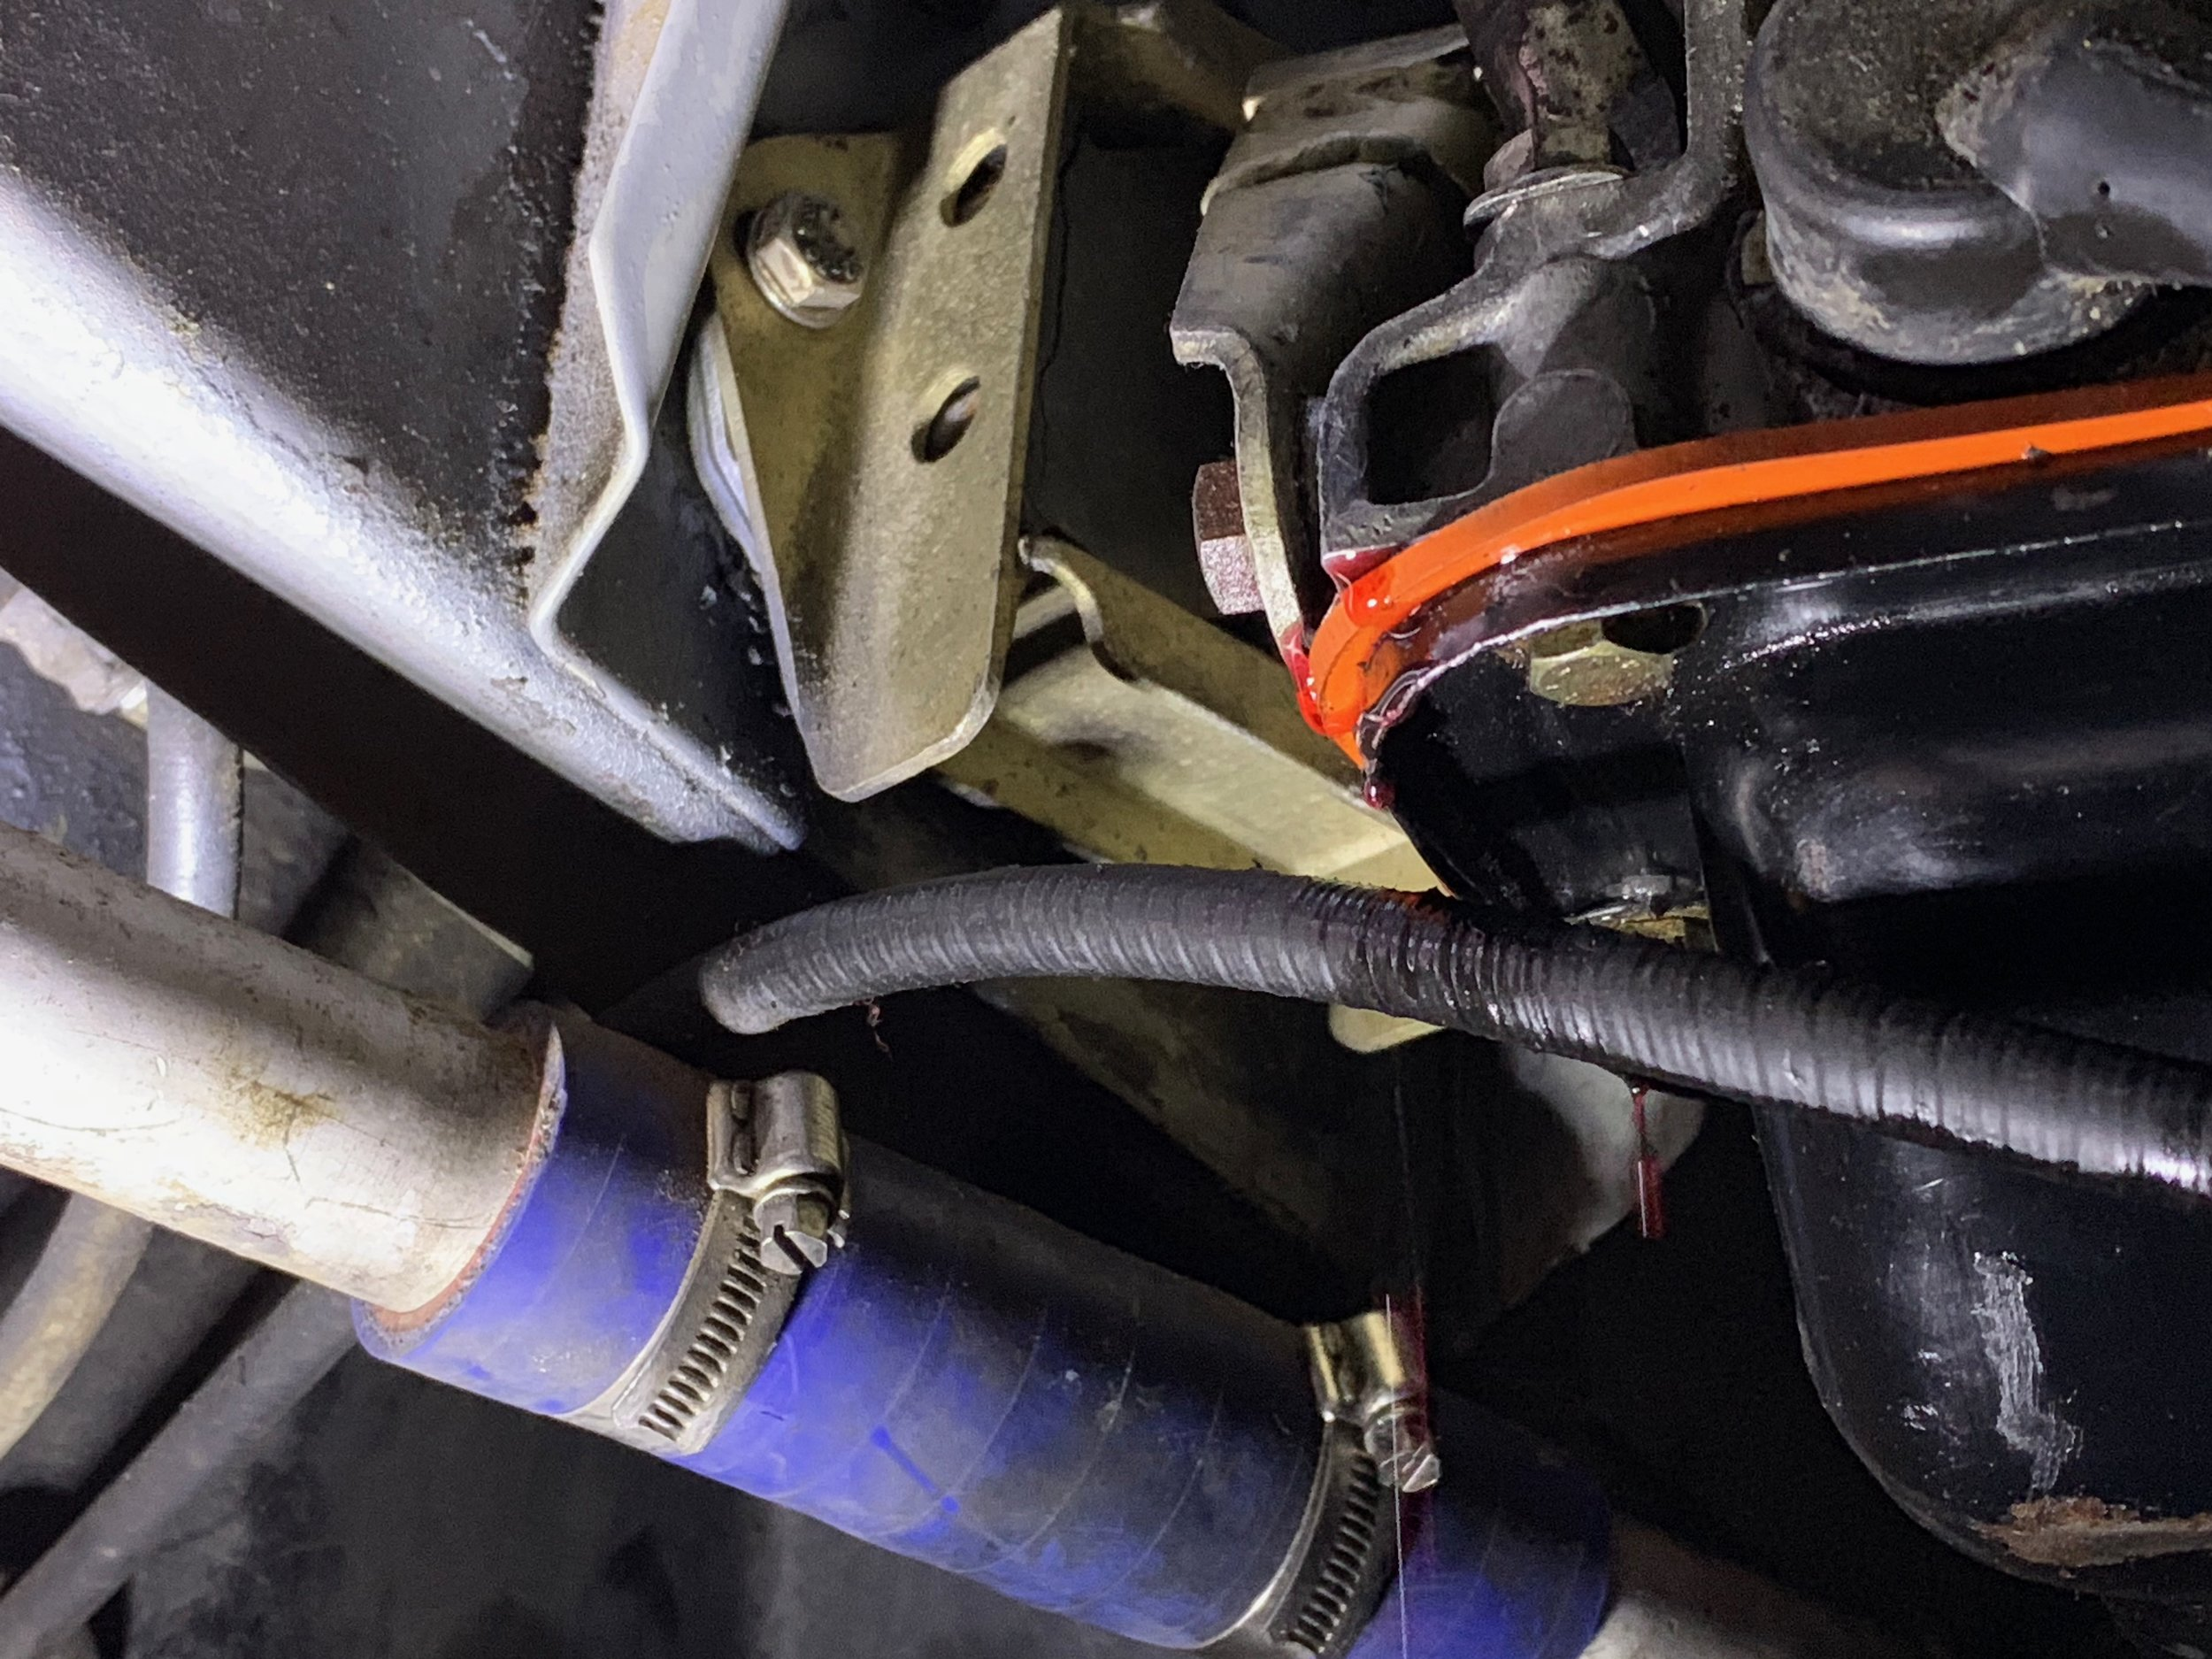 Transmission fluid pouring out from the base of the dipstick tube when just using an O-ring and RTV. An otterstat gasket worked much better.